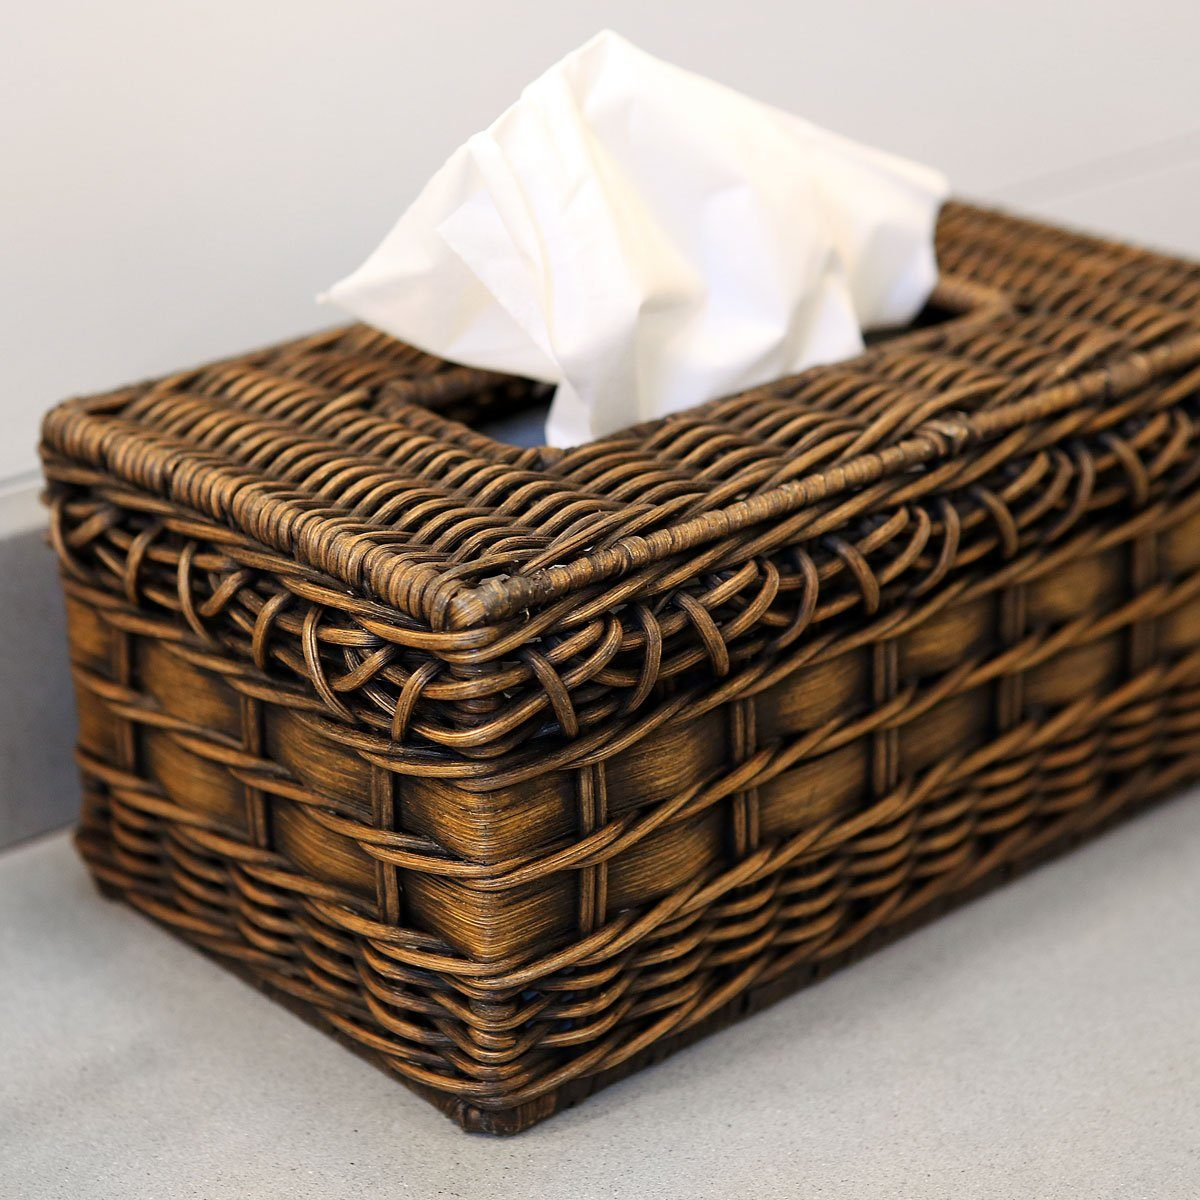 Rectangular Wicker Tissue Box Cover | The Basket Lady